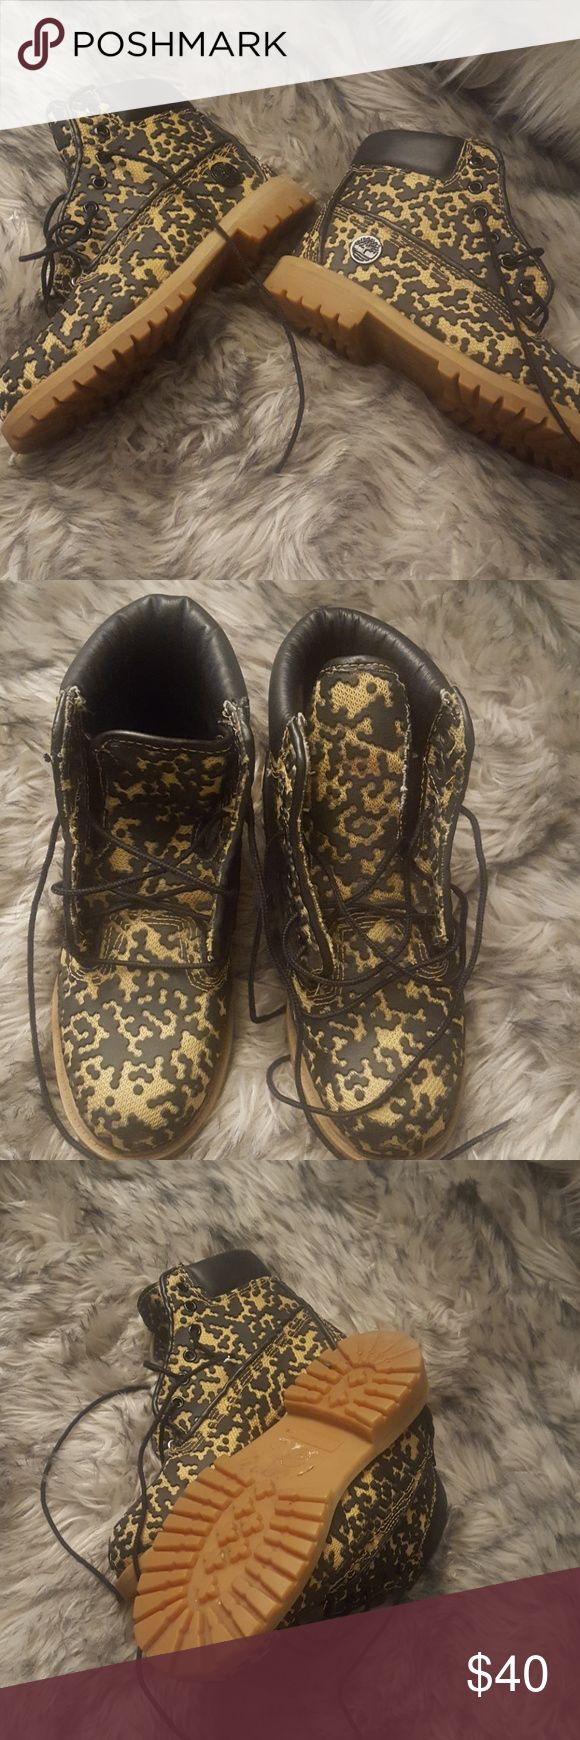 Unique Timberlands Boots - Mens SZ 5, Women SZ 8 In great condition. Very unique pair of Timberland boots. Men's size 5. Women's size 8. Genuine Leather. Timberland Shoes Lace Up Boots